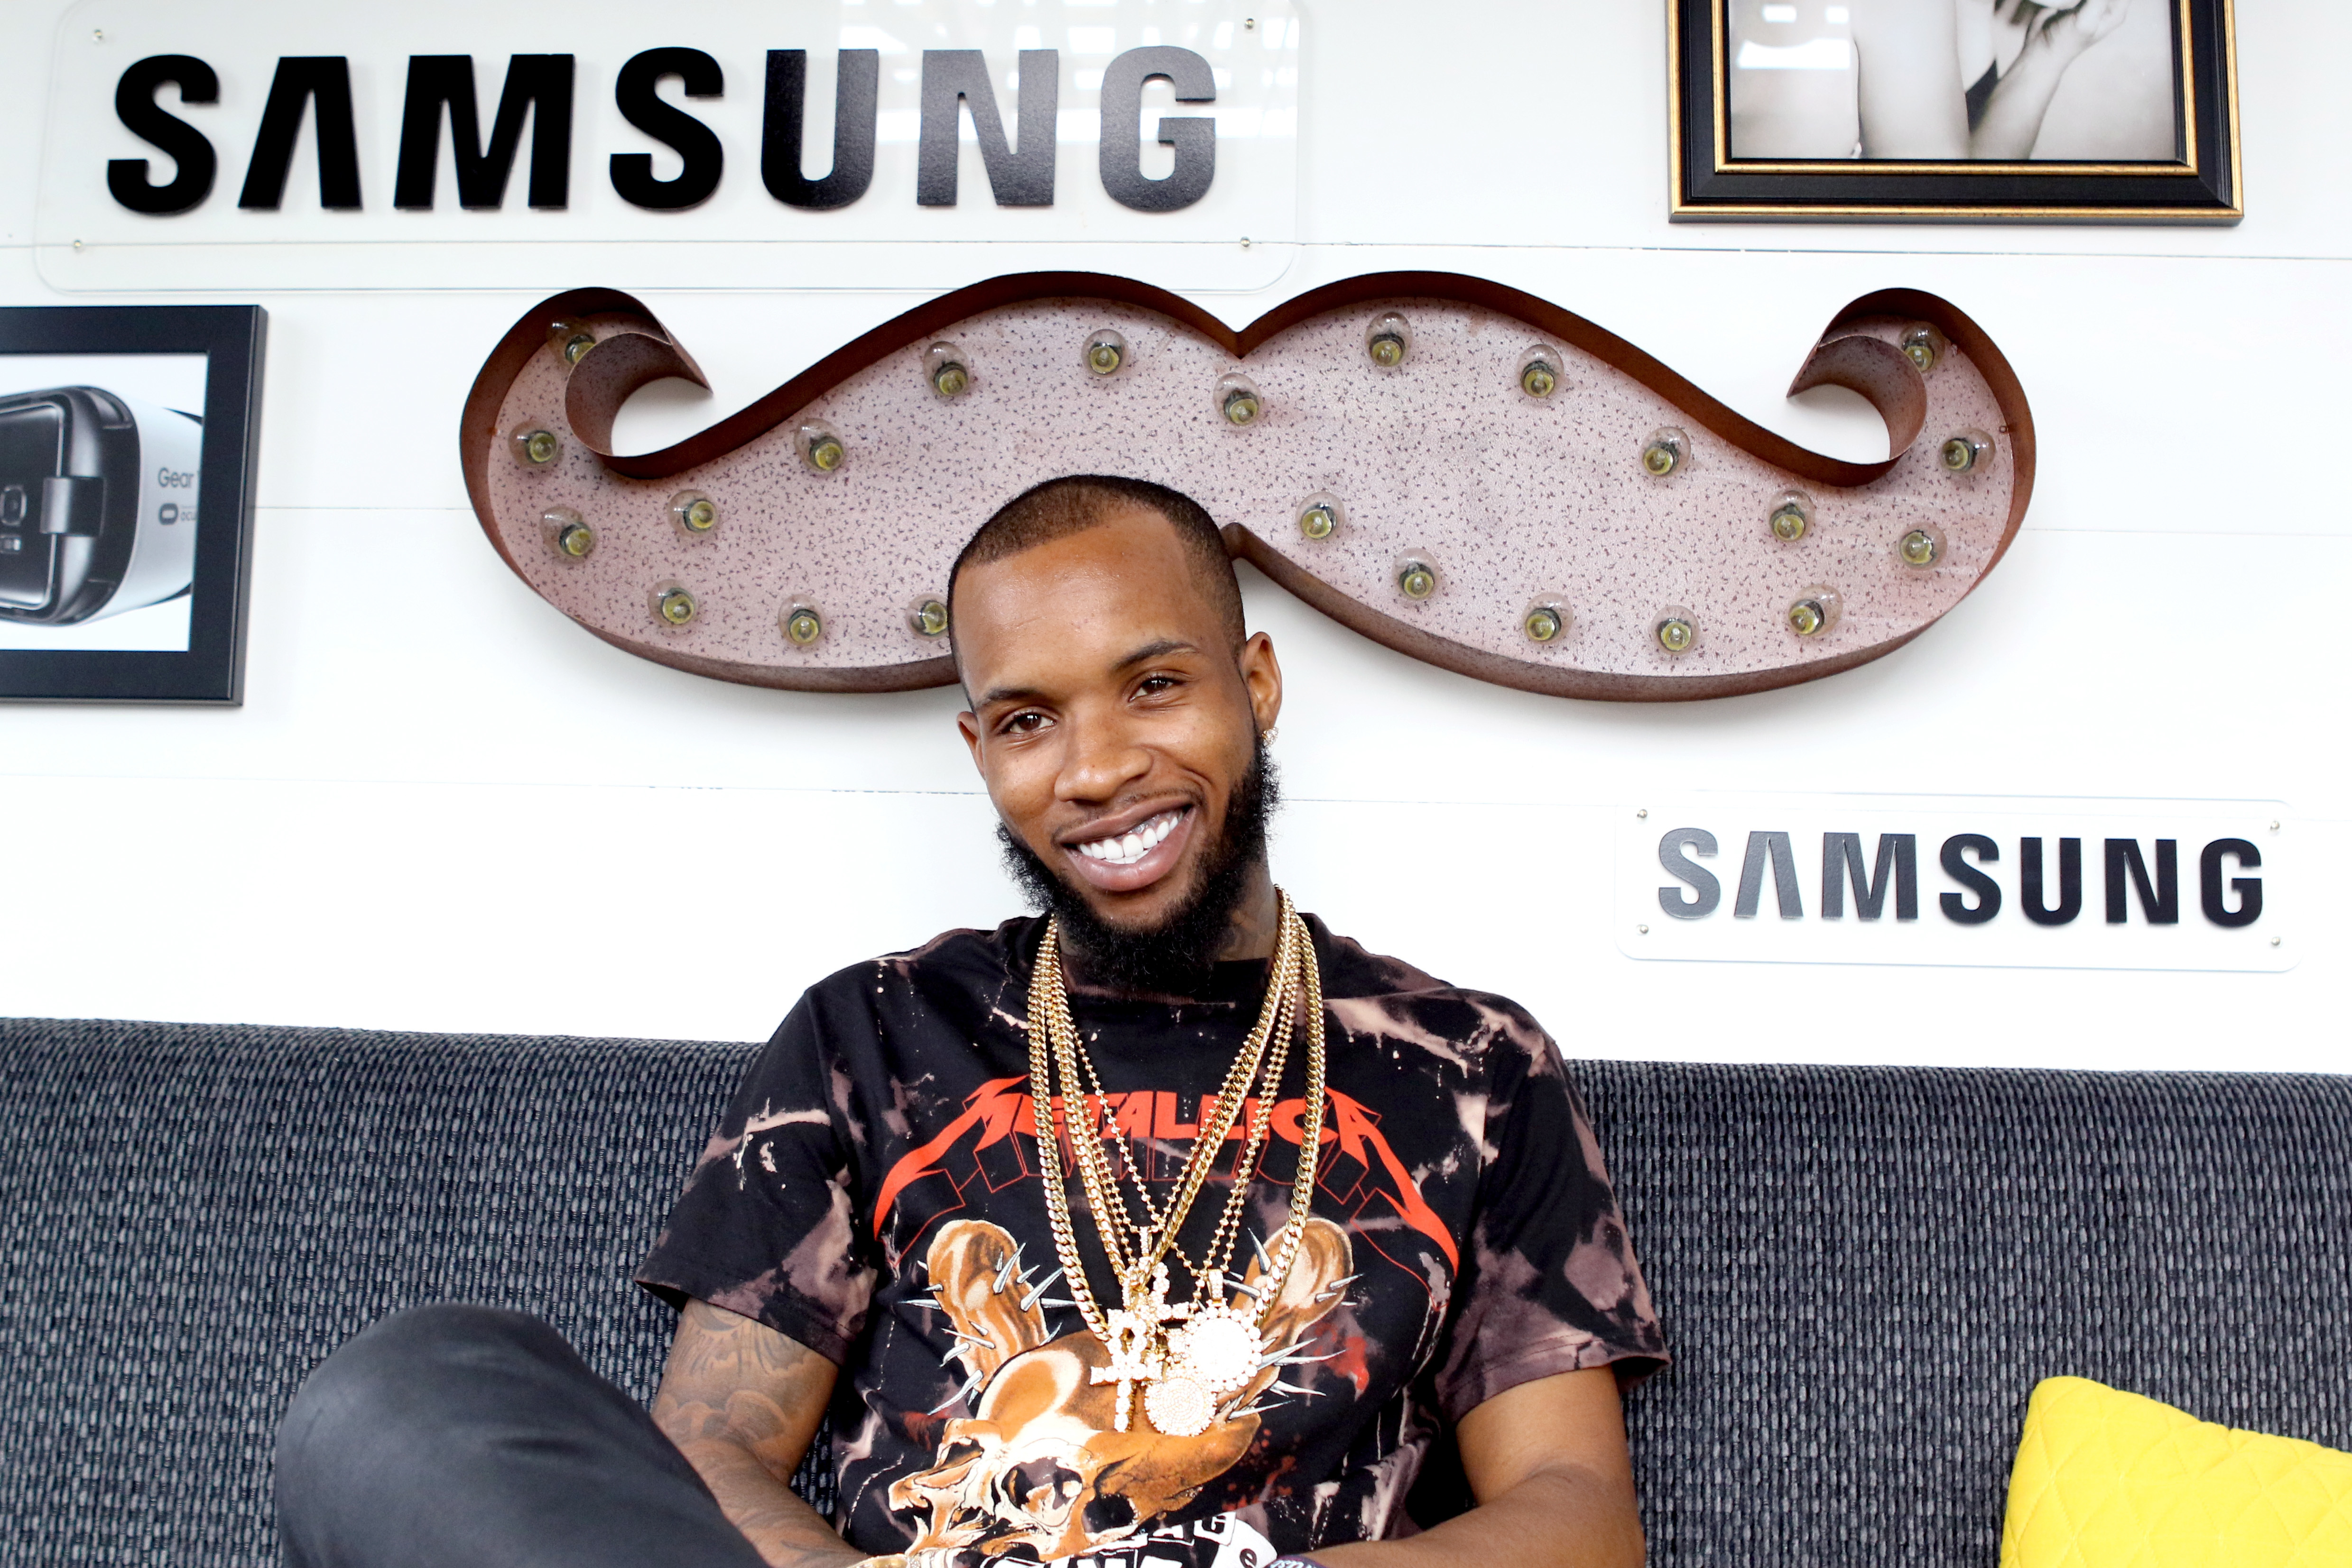 CHICAGO, IL - JULY 30:  Rapper Tory Lanez is seen at the Samsung Creator's Lab at Lollapalooza 2016 - Day 3 at Grant Park on July 30, 2016 in Chicago, Illinois.  (Photo by Gabriel Grams/Getty Images for Samsung)